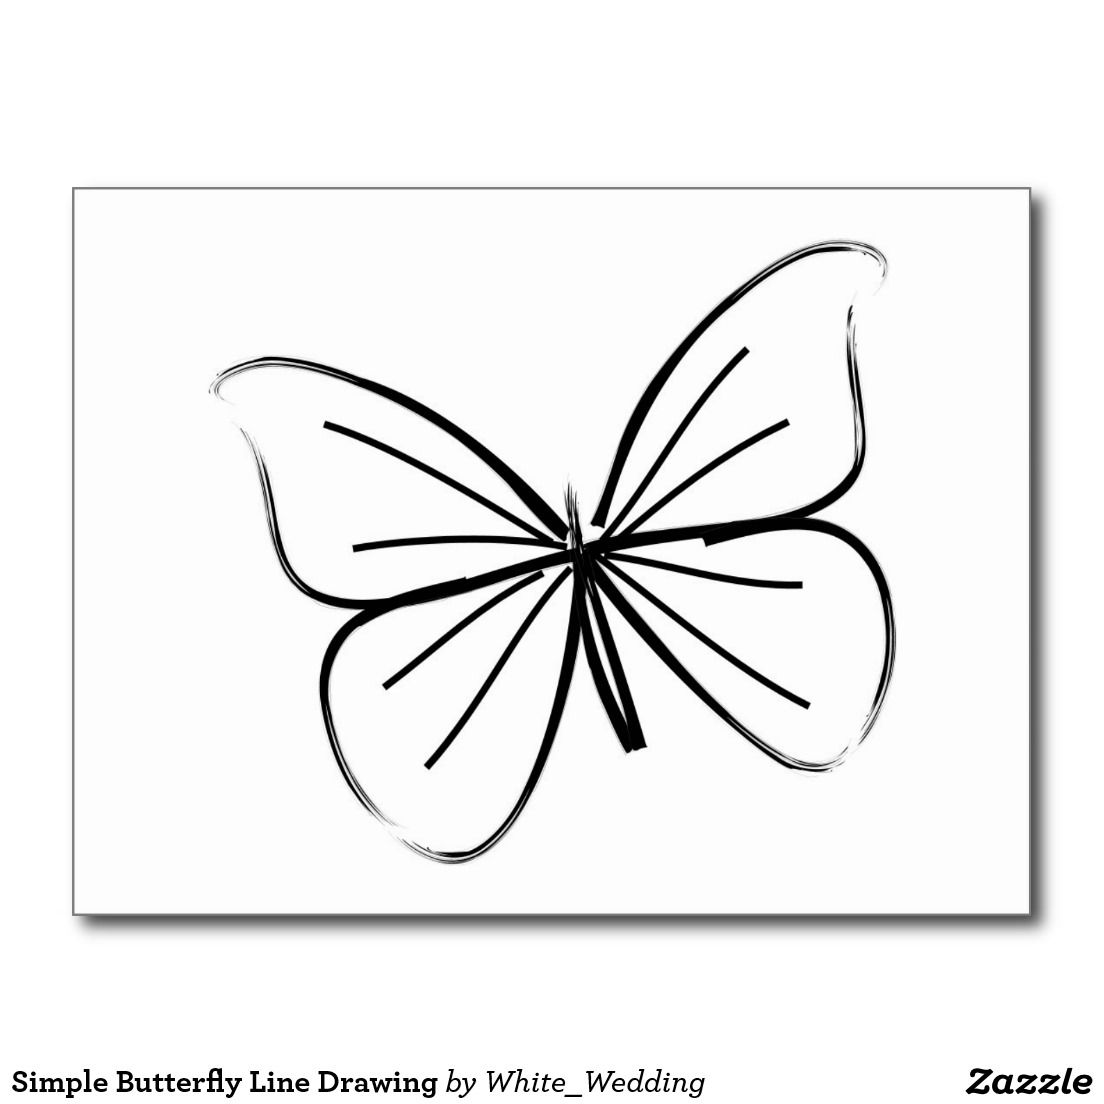 Simple butterfly line drawing postcard motiifs butterfly line drawing simple - Dessin de papillon facile ...